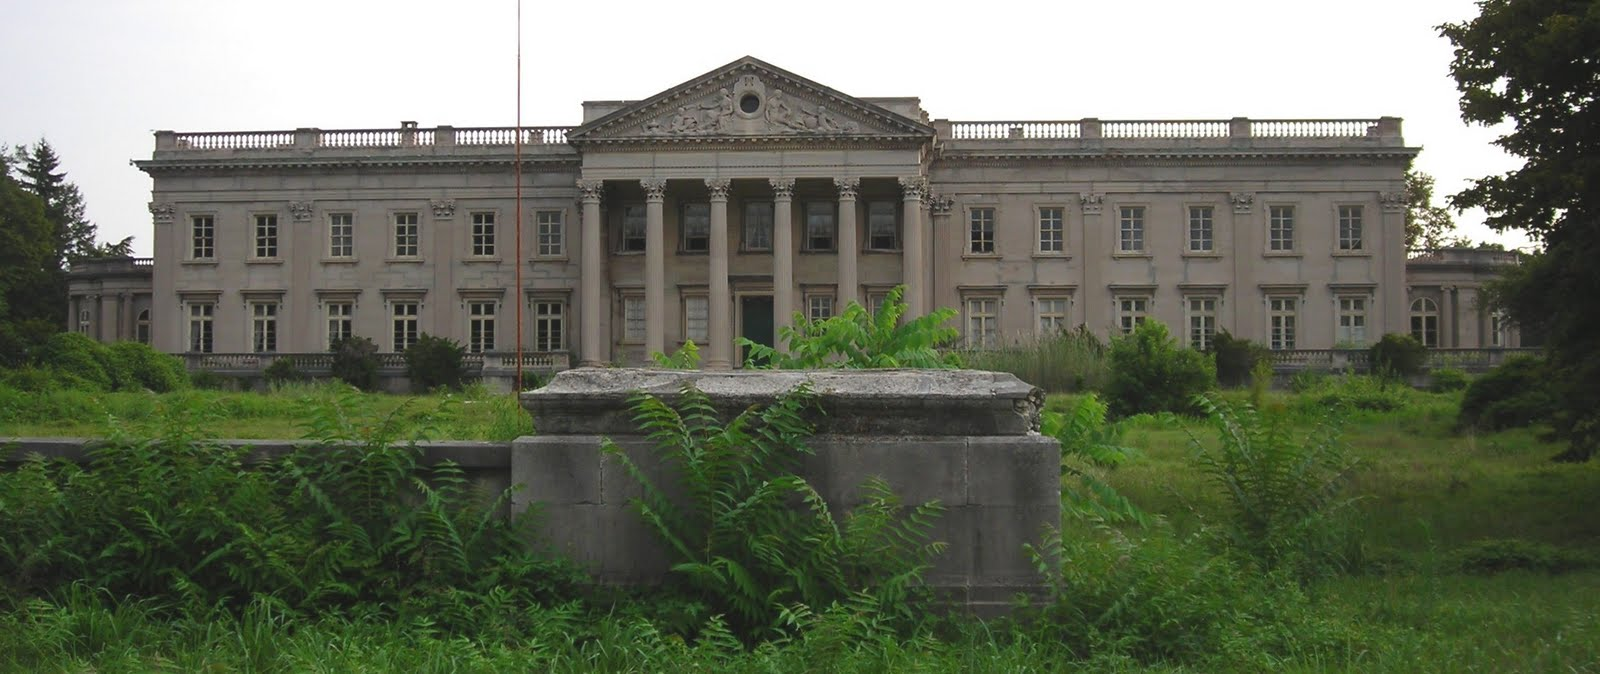 art and architecture mainly widener s sublime art treasures in by the end of the century he needed to polish up his image and lynnewood hall was the place to do that polishing